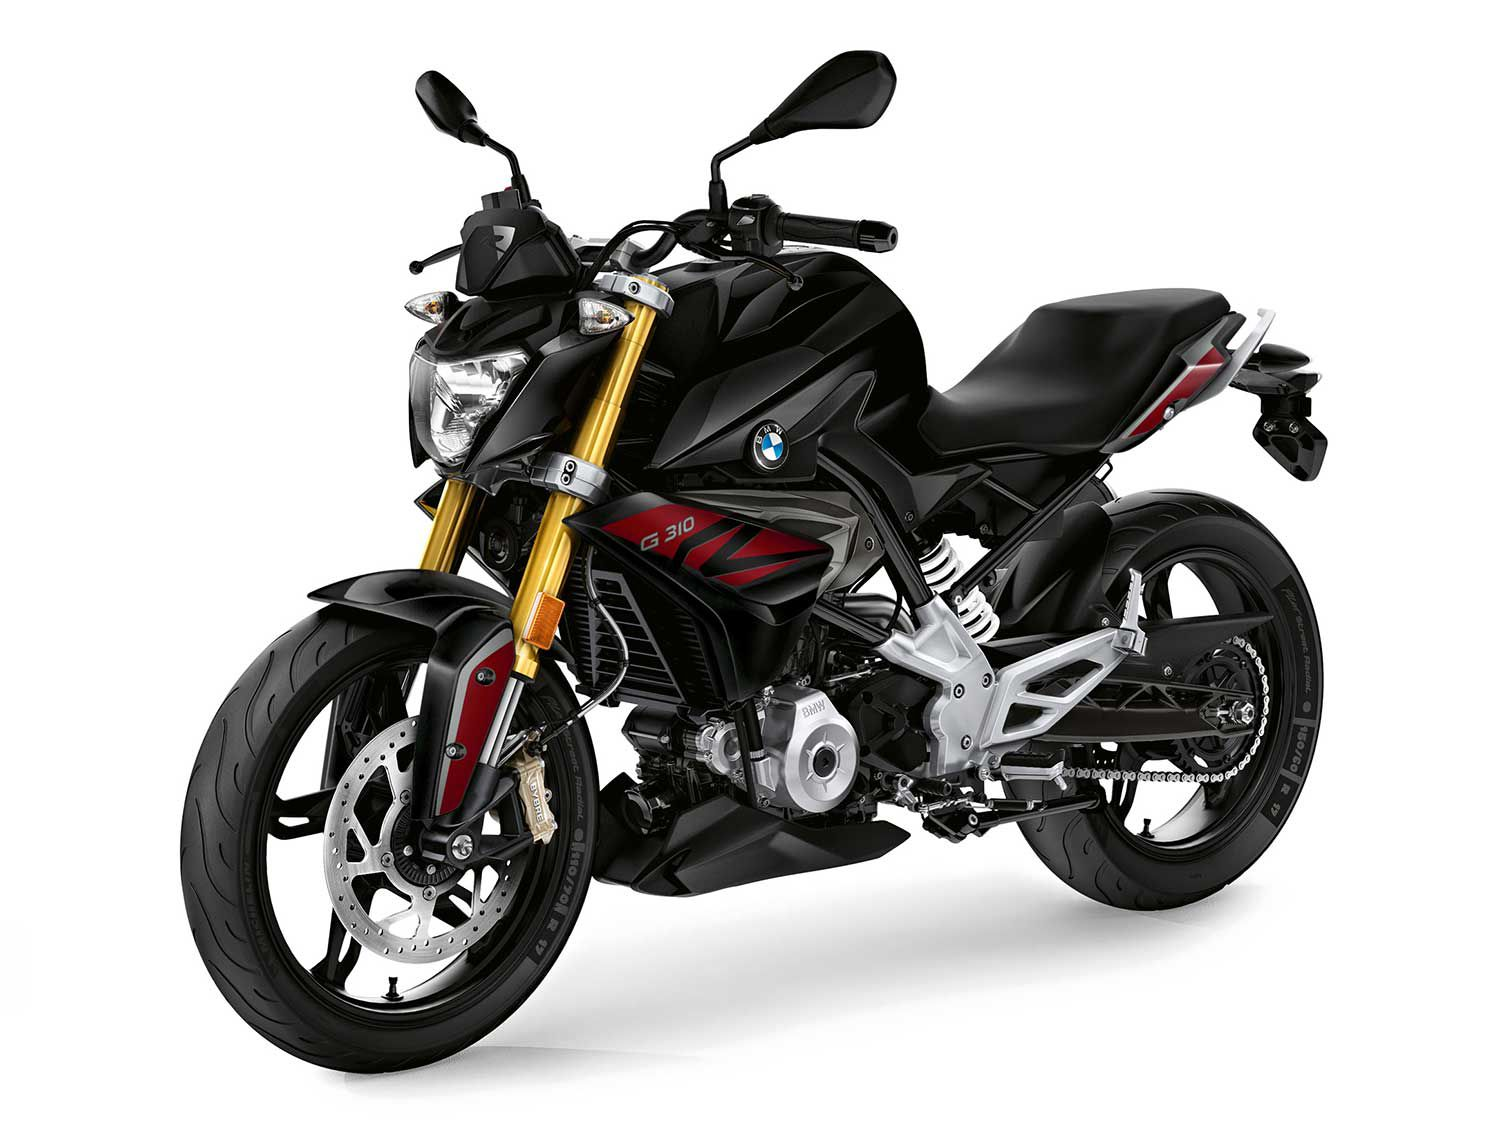 The BMW G 310 R provides high-quality build at a palatable price.